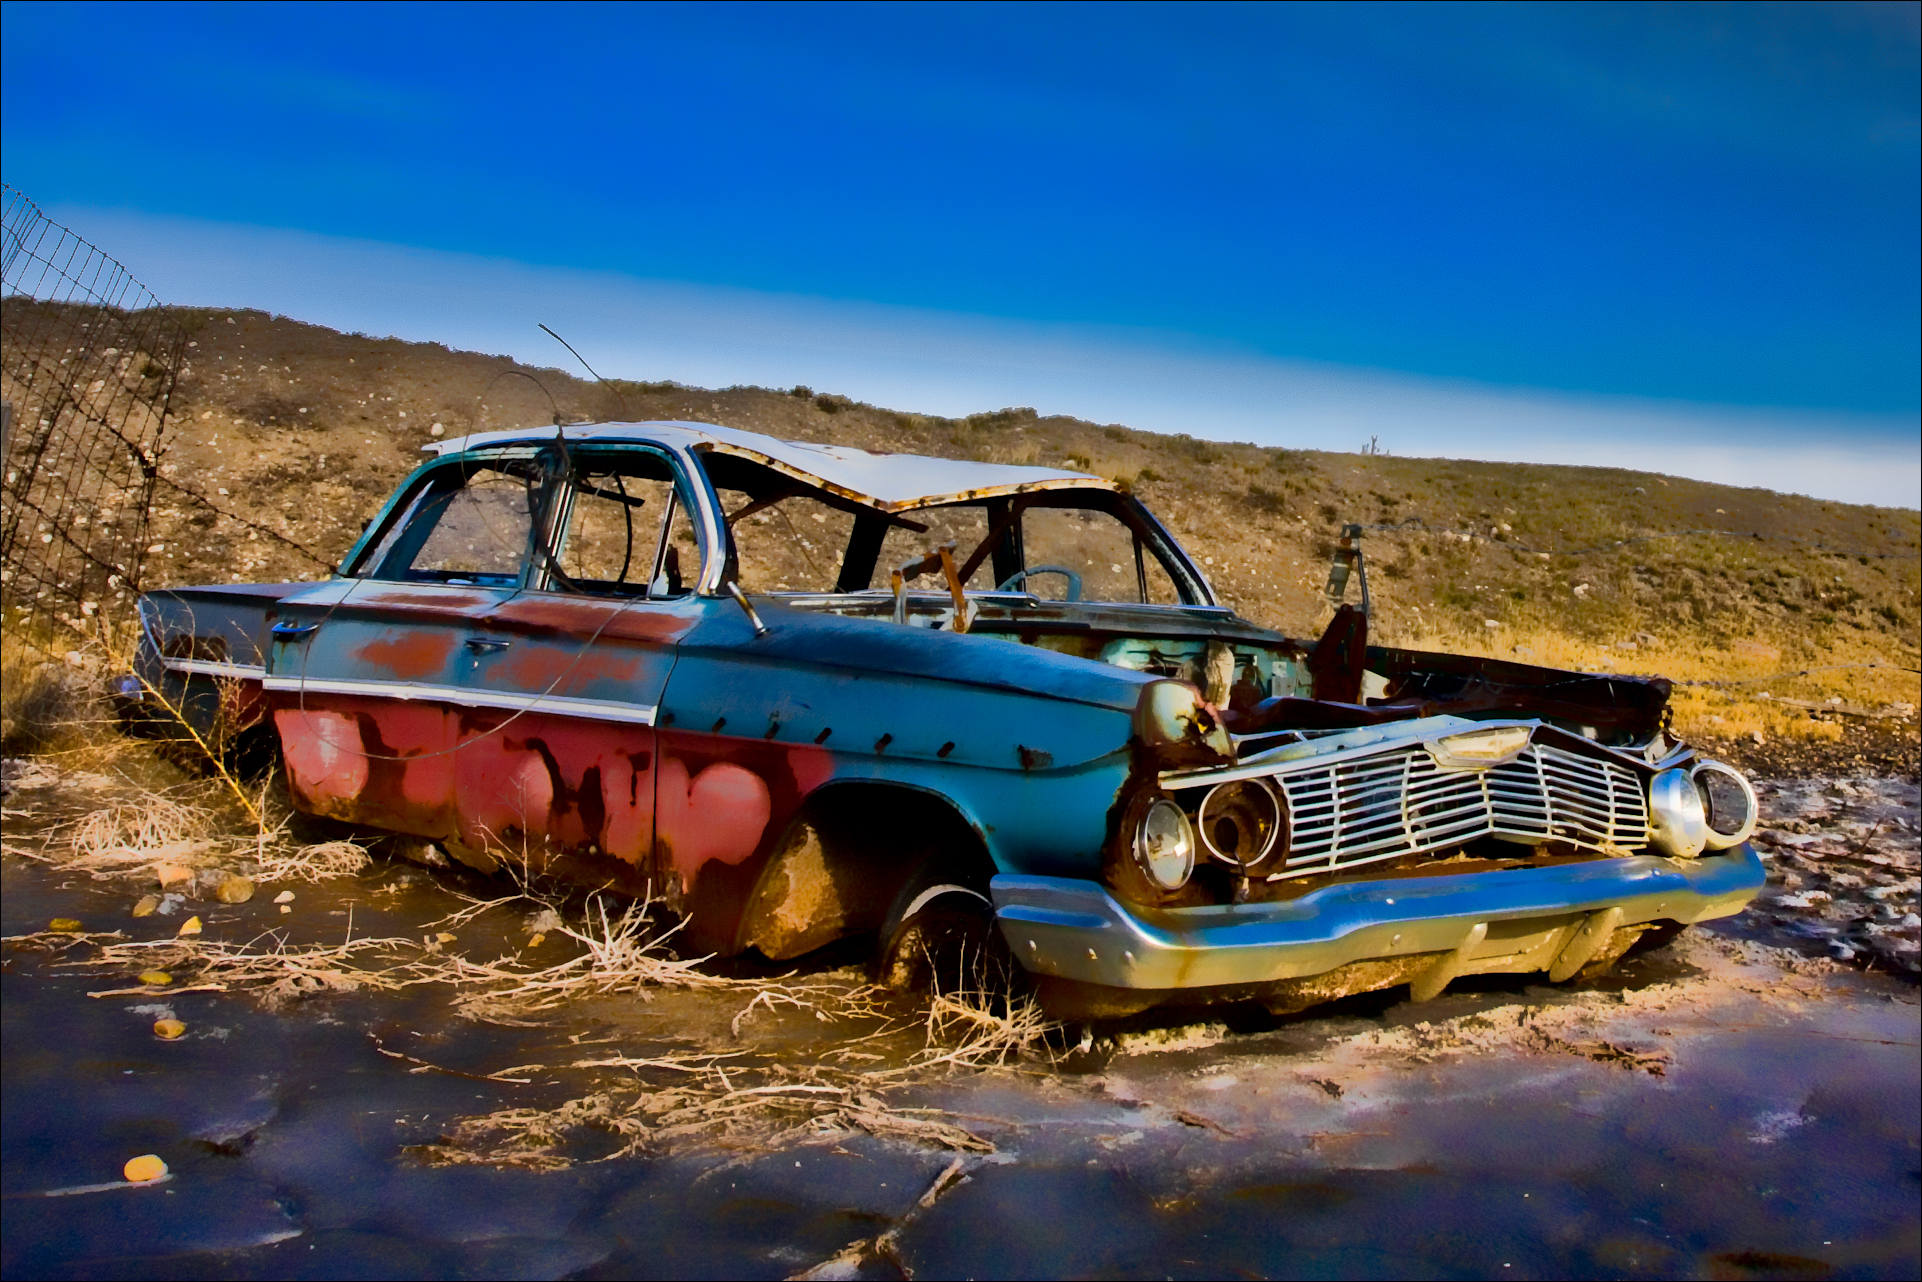 Wreck Wallpapers Vehicles HQ Wreck Pictures